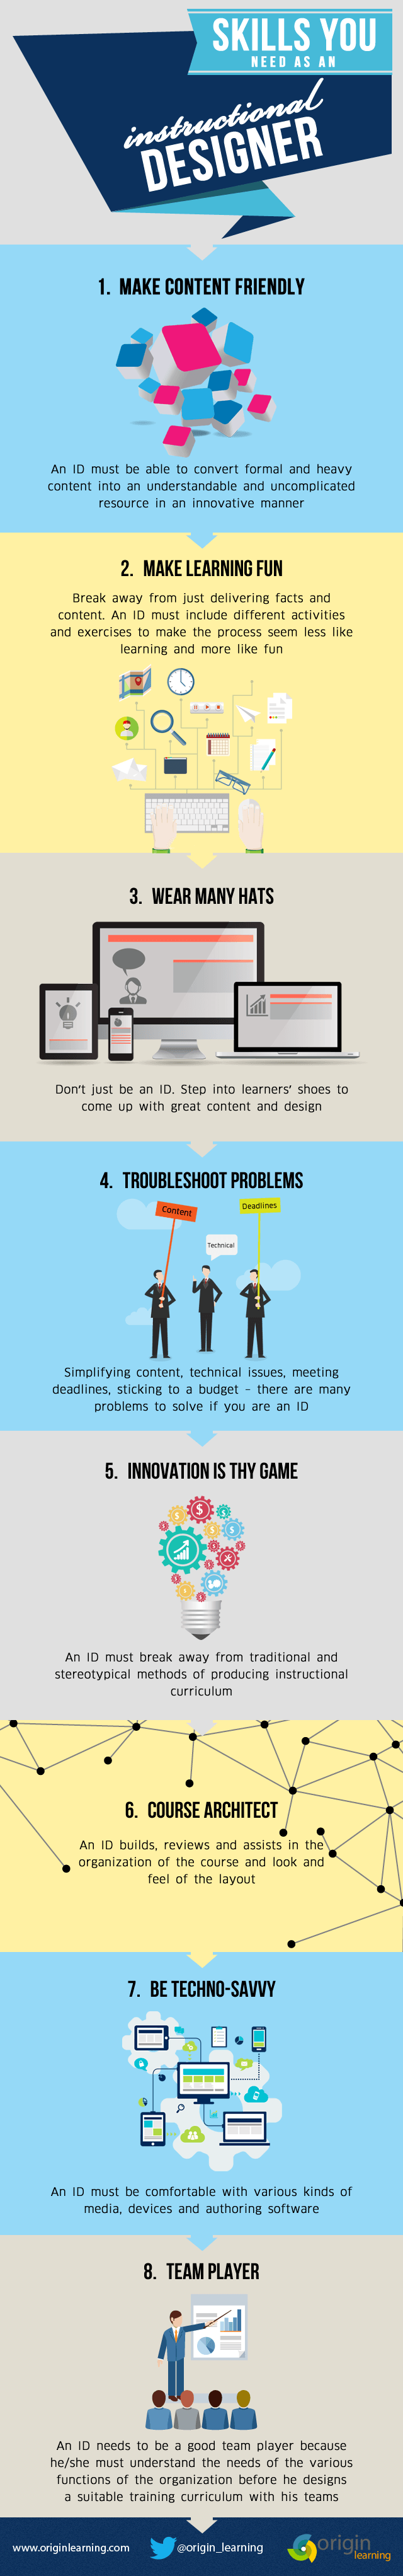 Top Instructional Designer's Skills Infographic